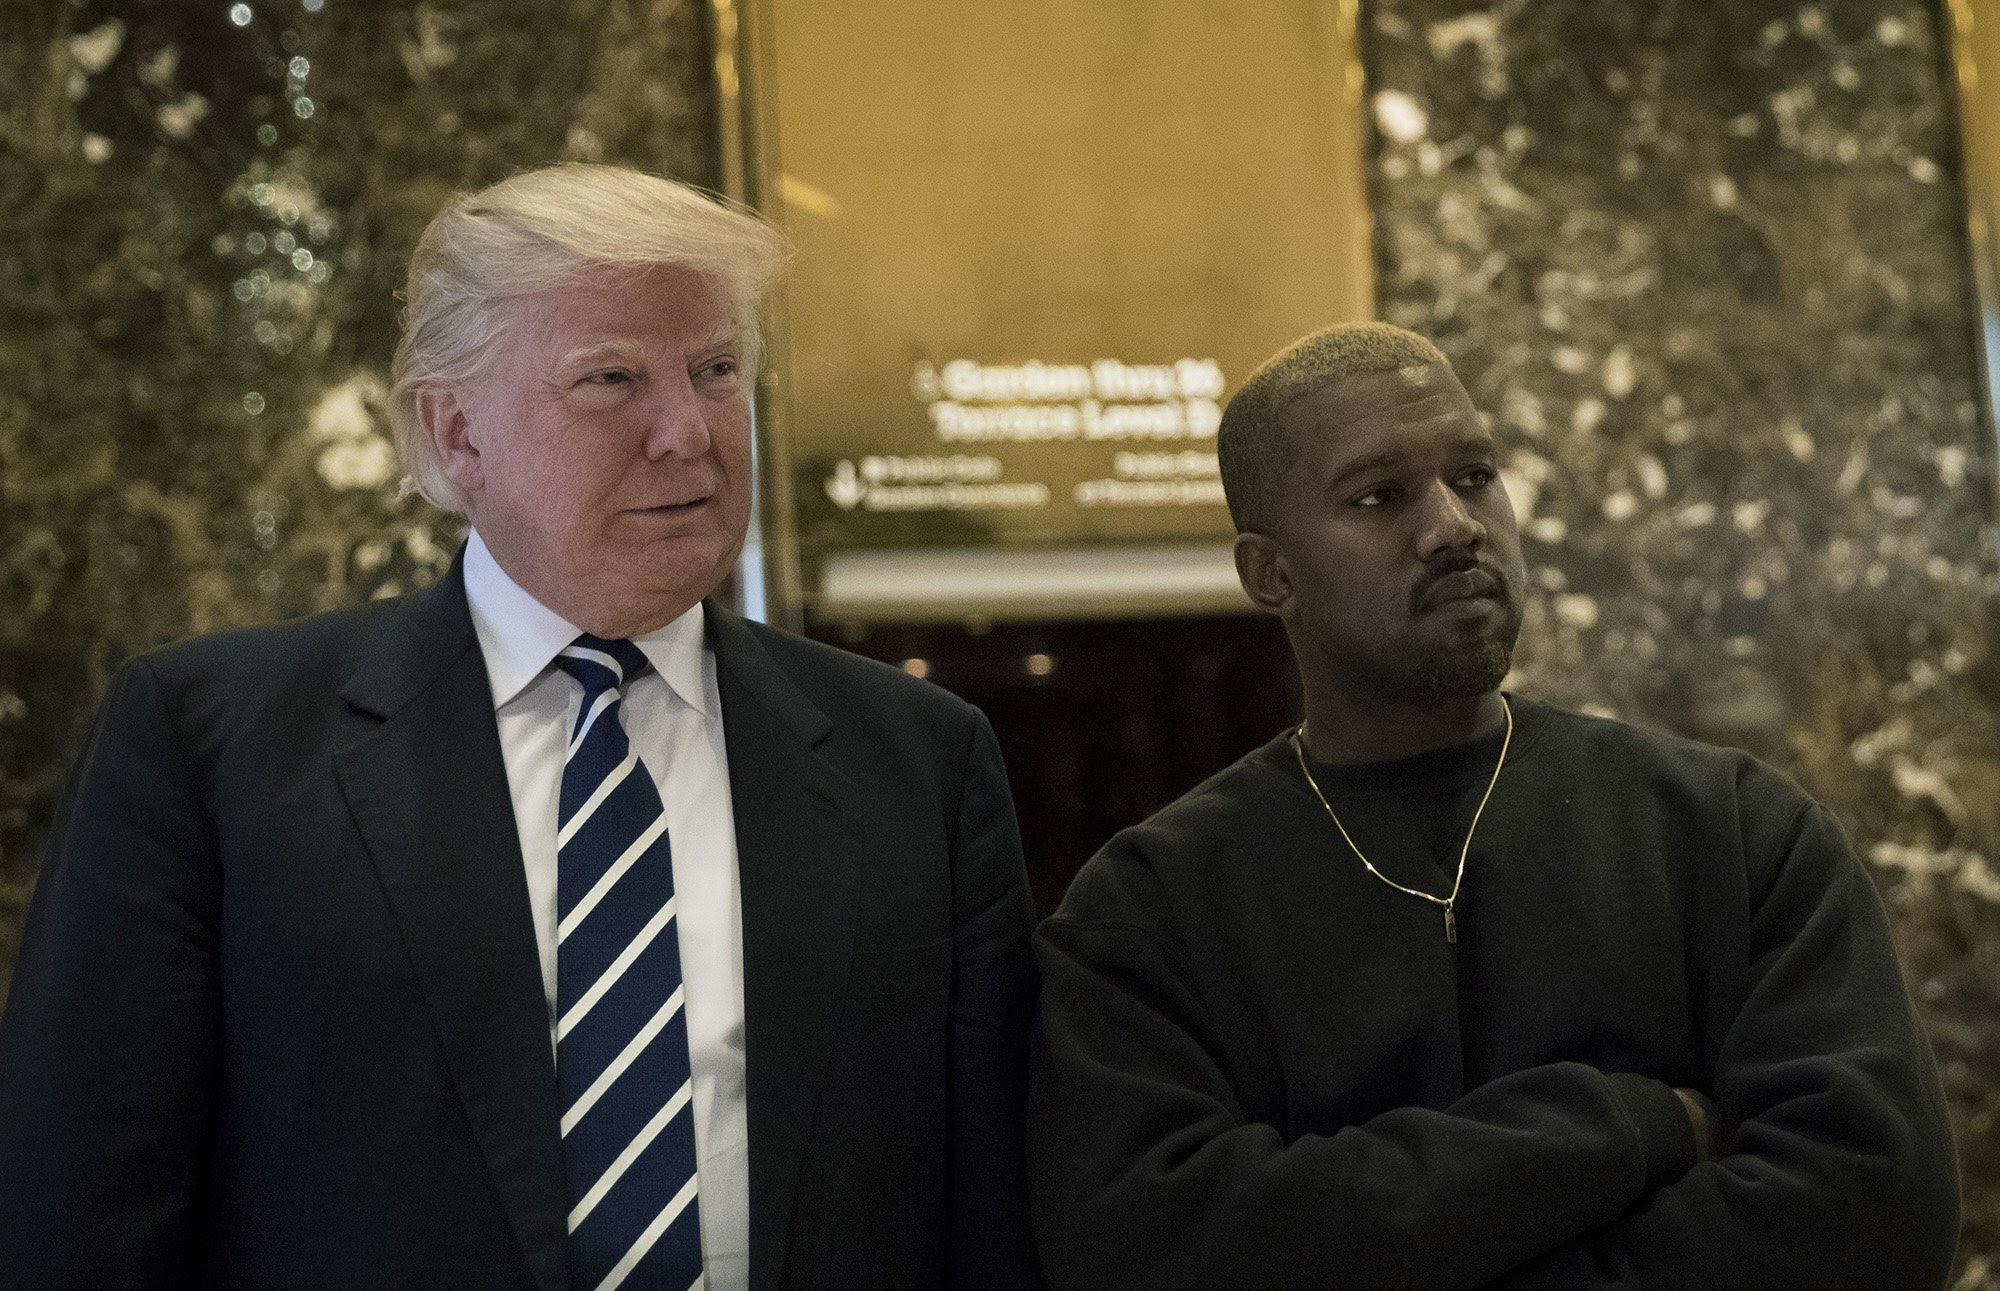 Trump thanks rapper Kanye West for his support